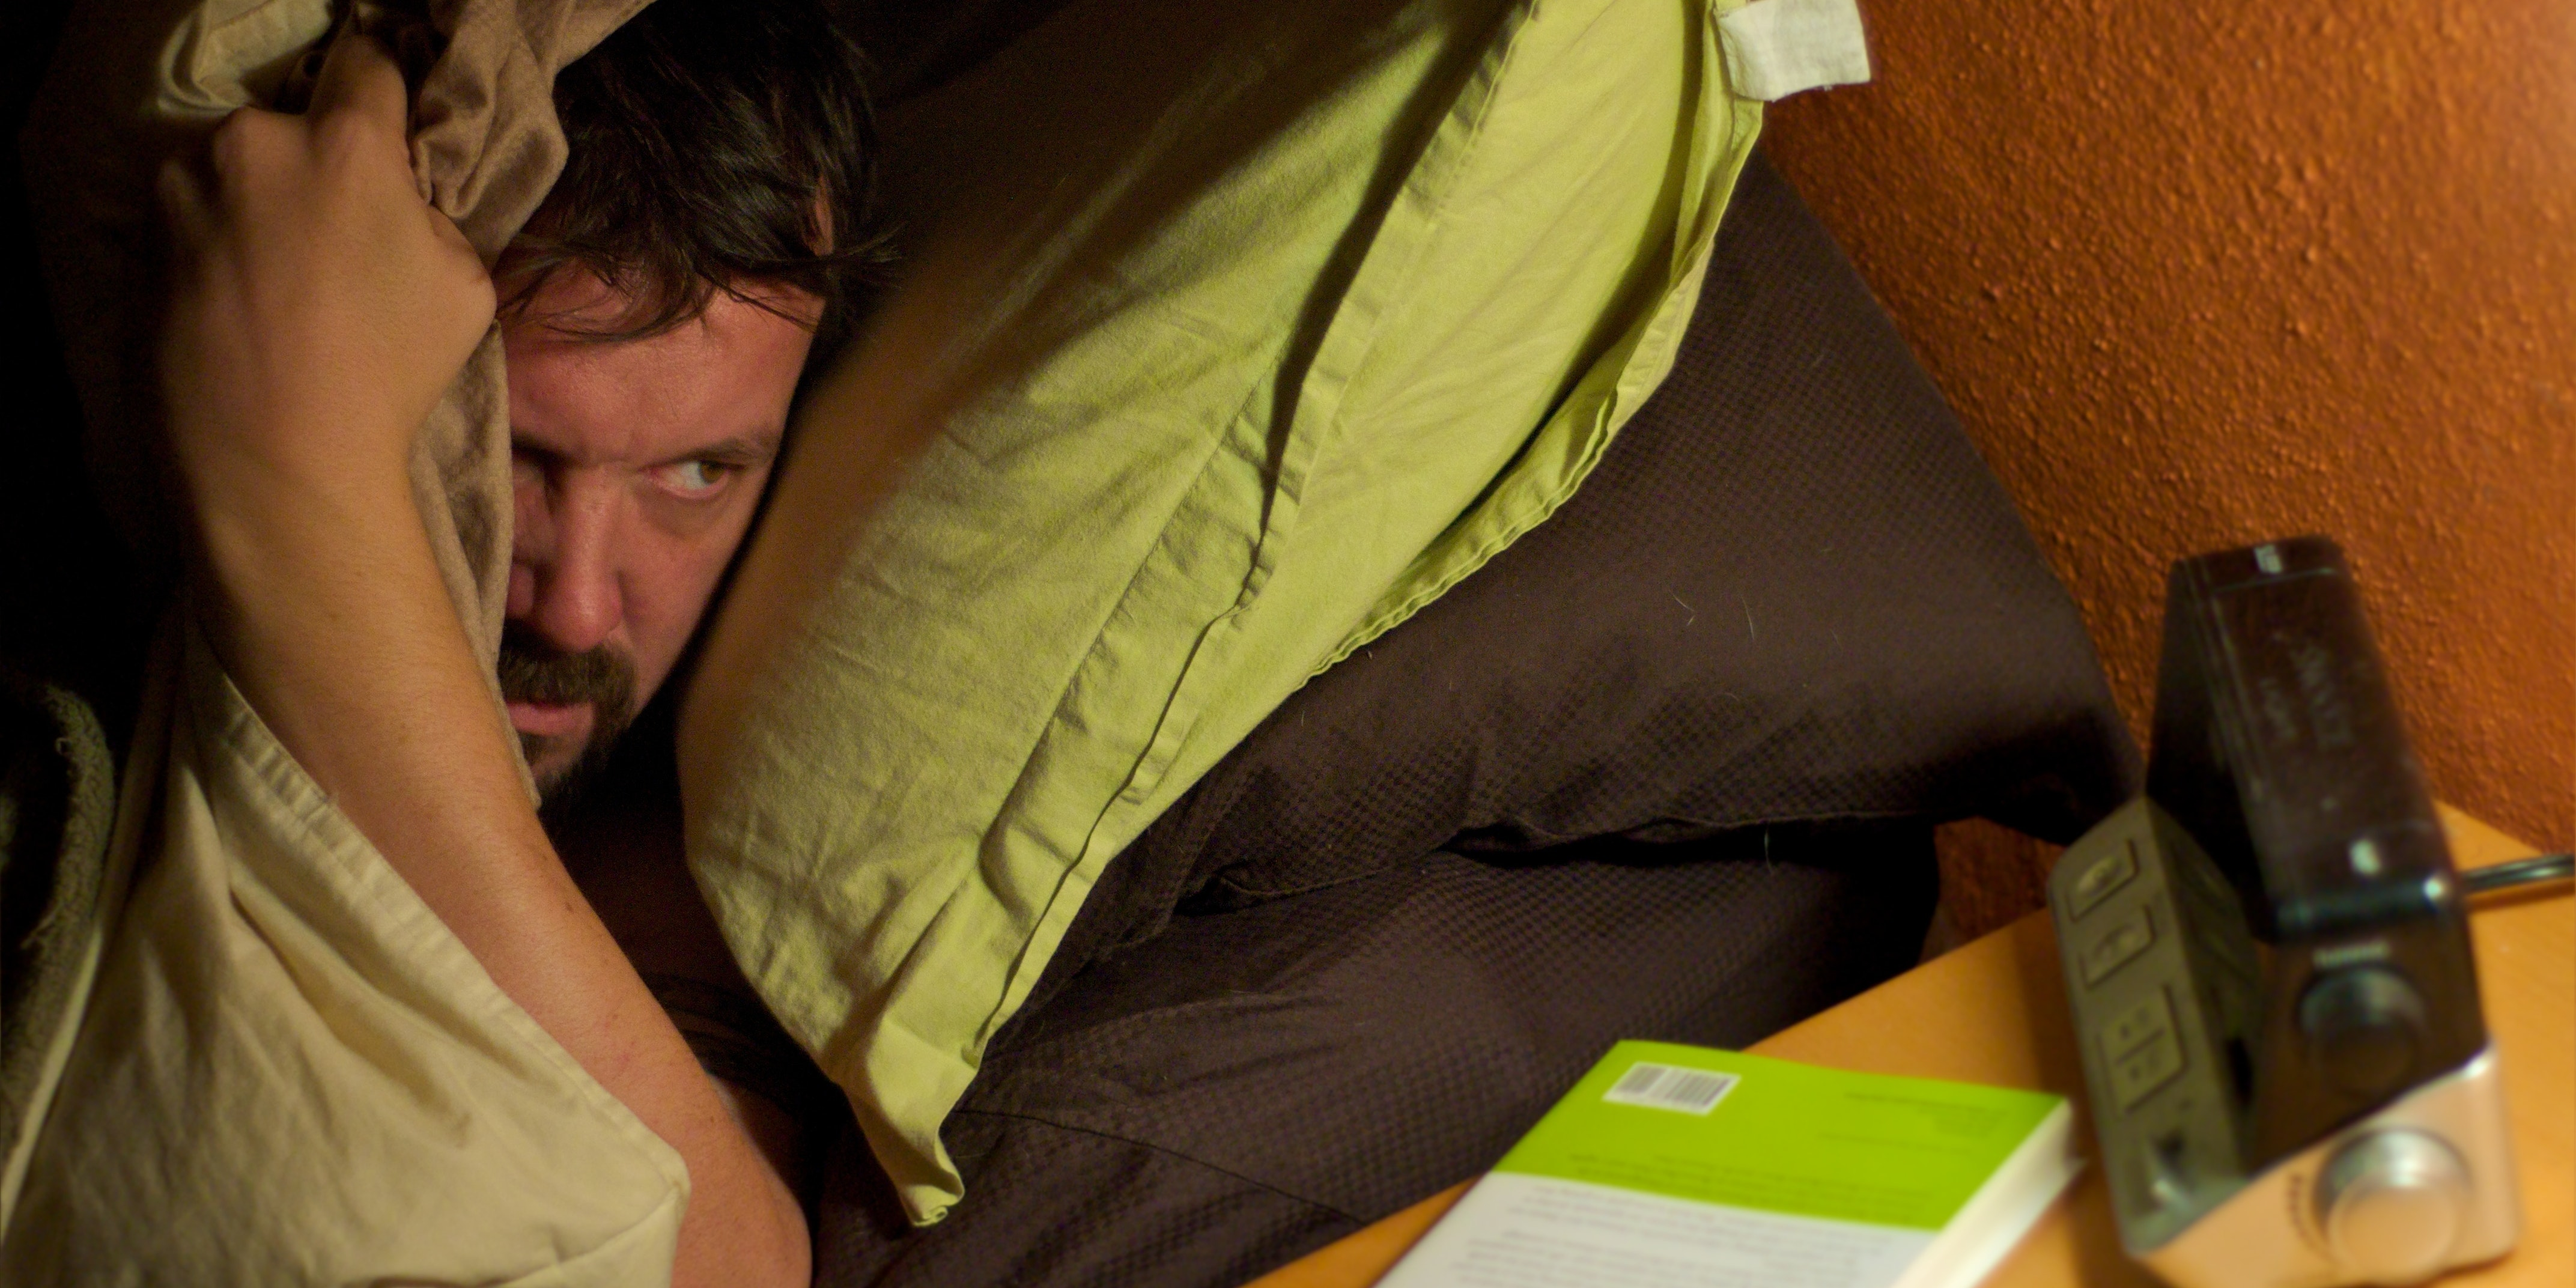 Scientists Say Some People Recover Faster From Sleep Deprivation